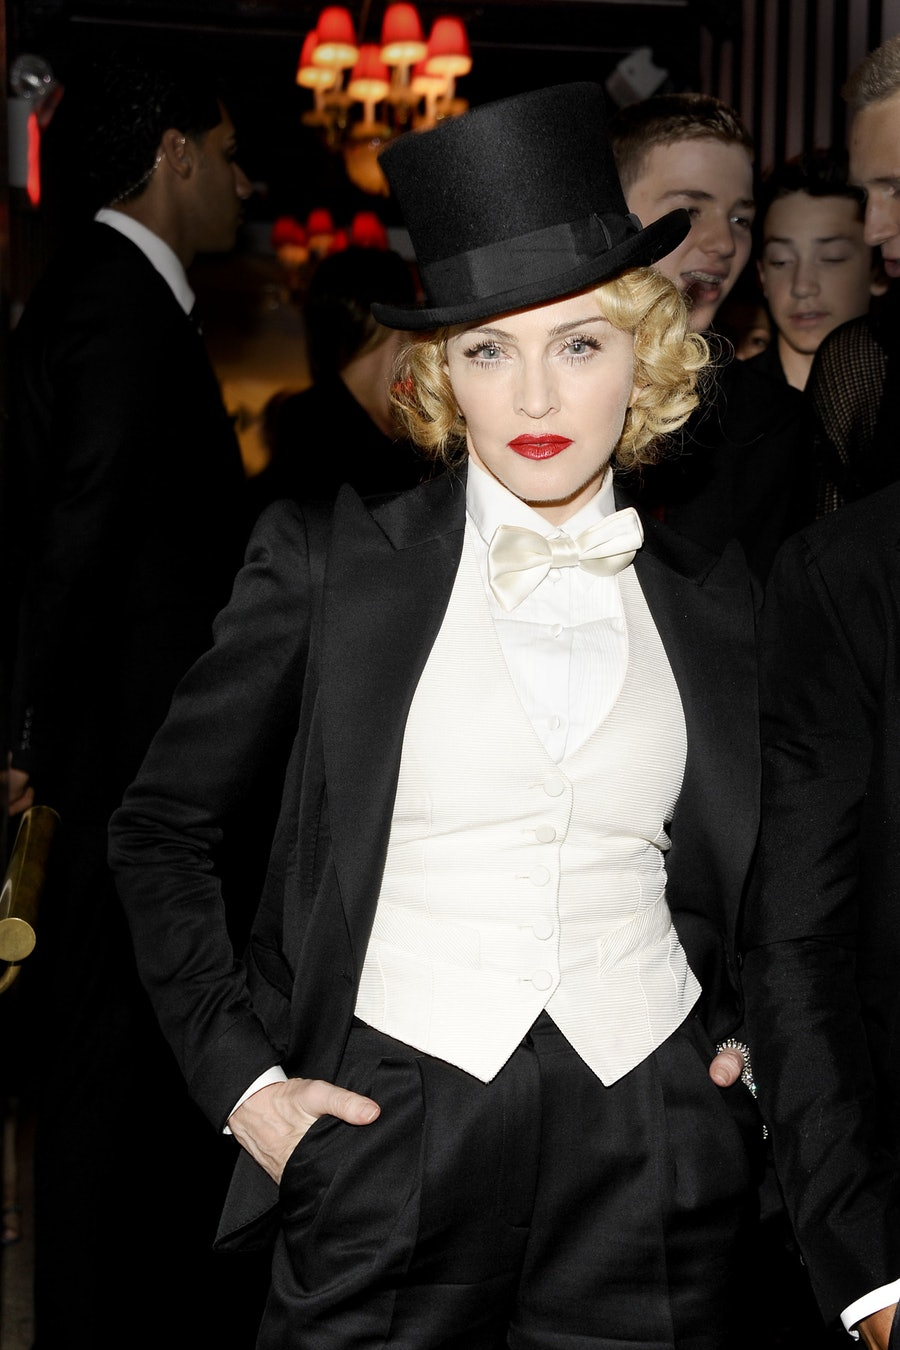 DOLCE & GABBANA and THE CINEMA SOCIETY host the after party for the EPIX WORLD PREMIERE of MADONNA: THE MDNA TOUR